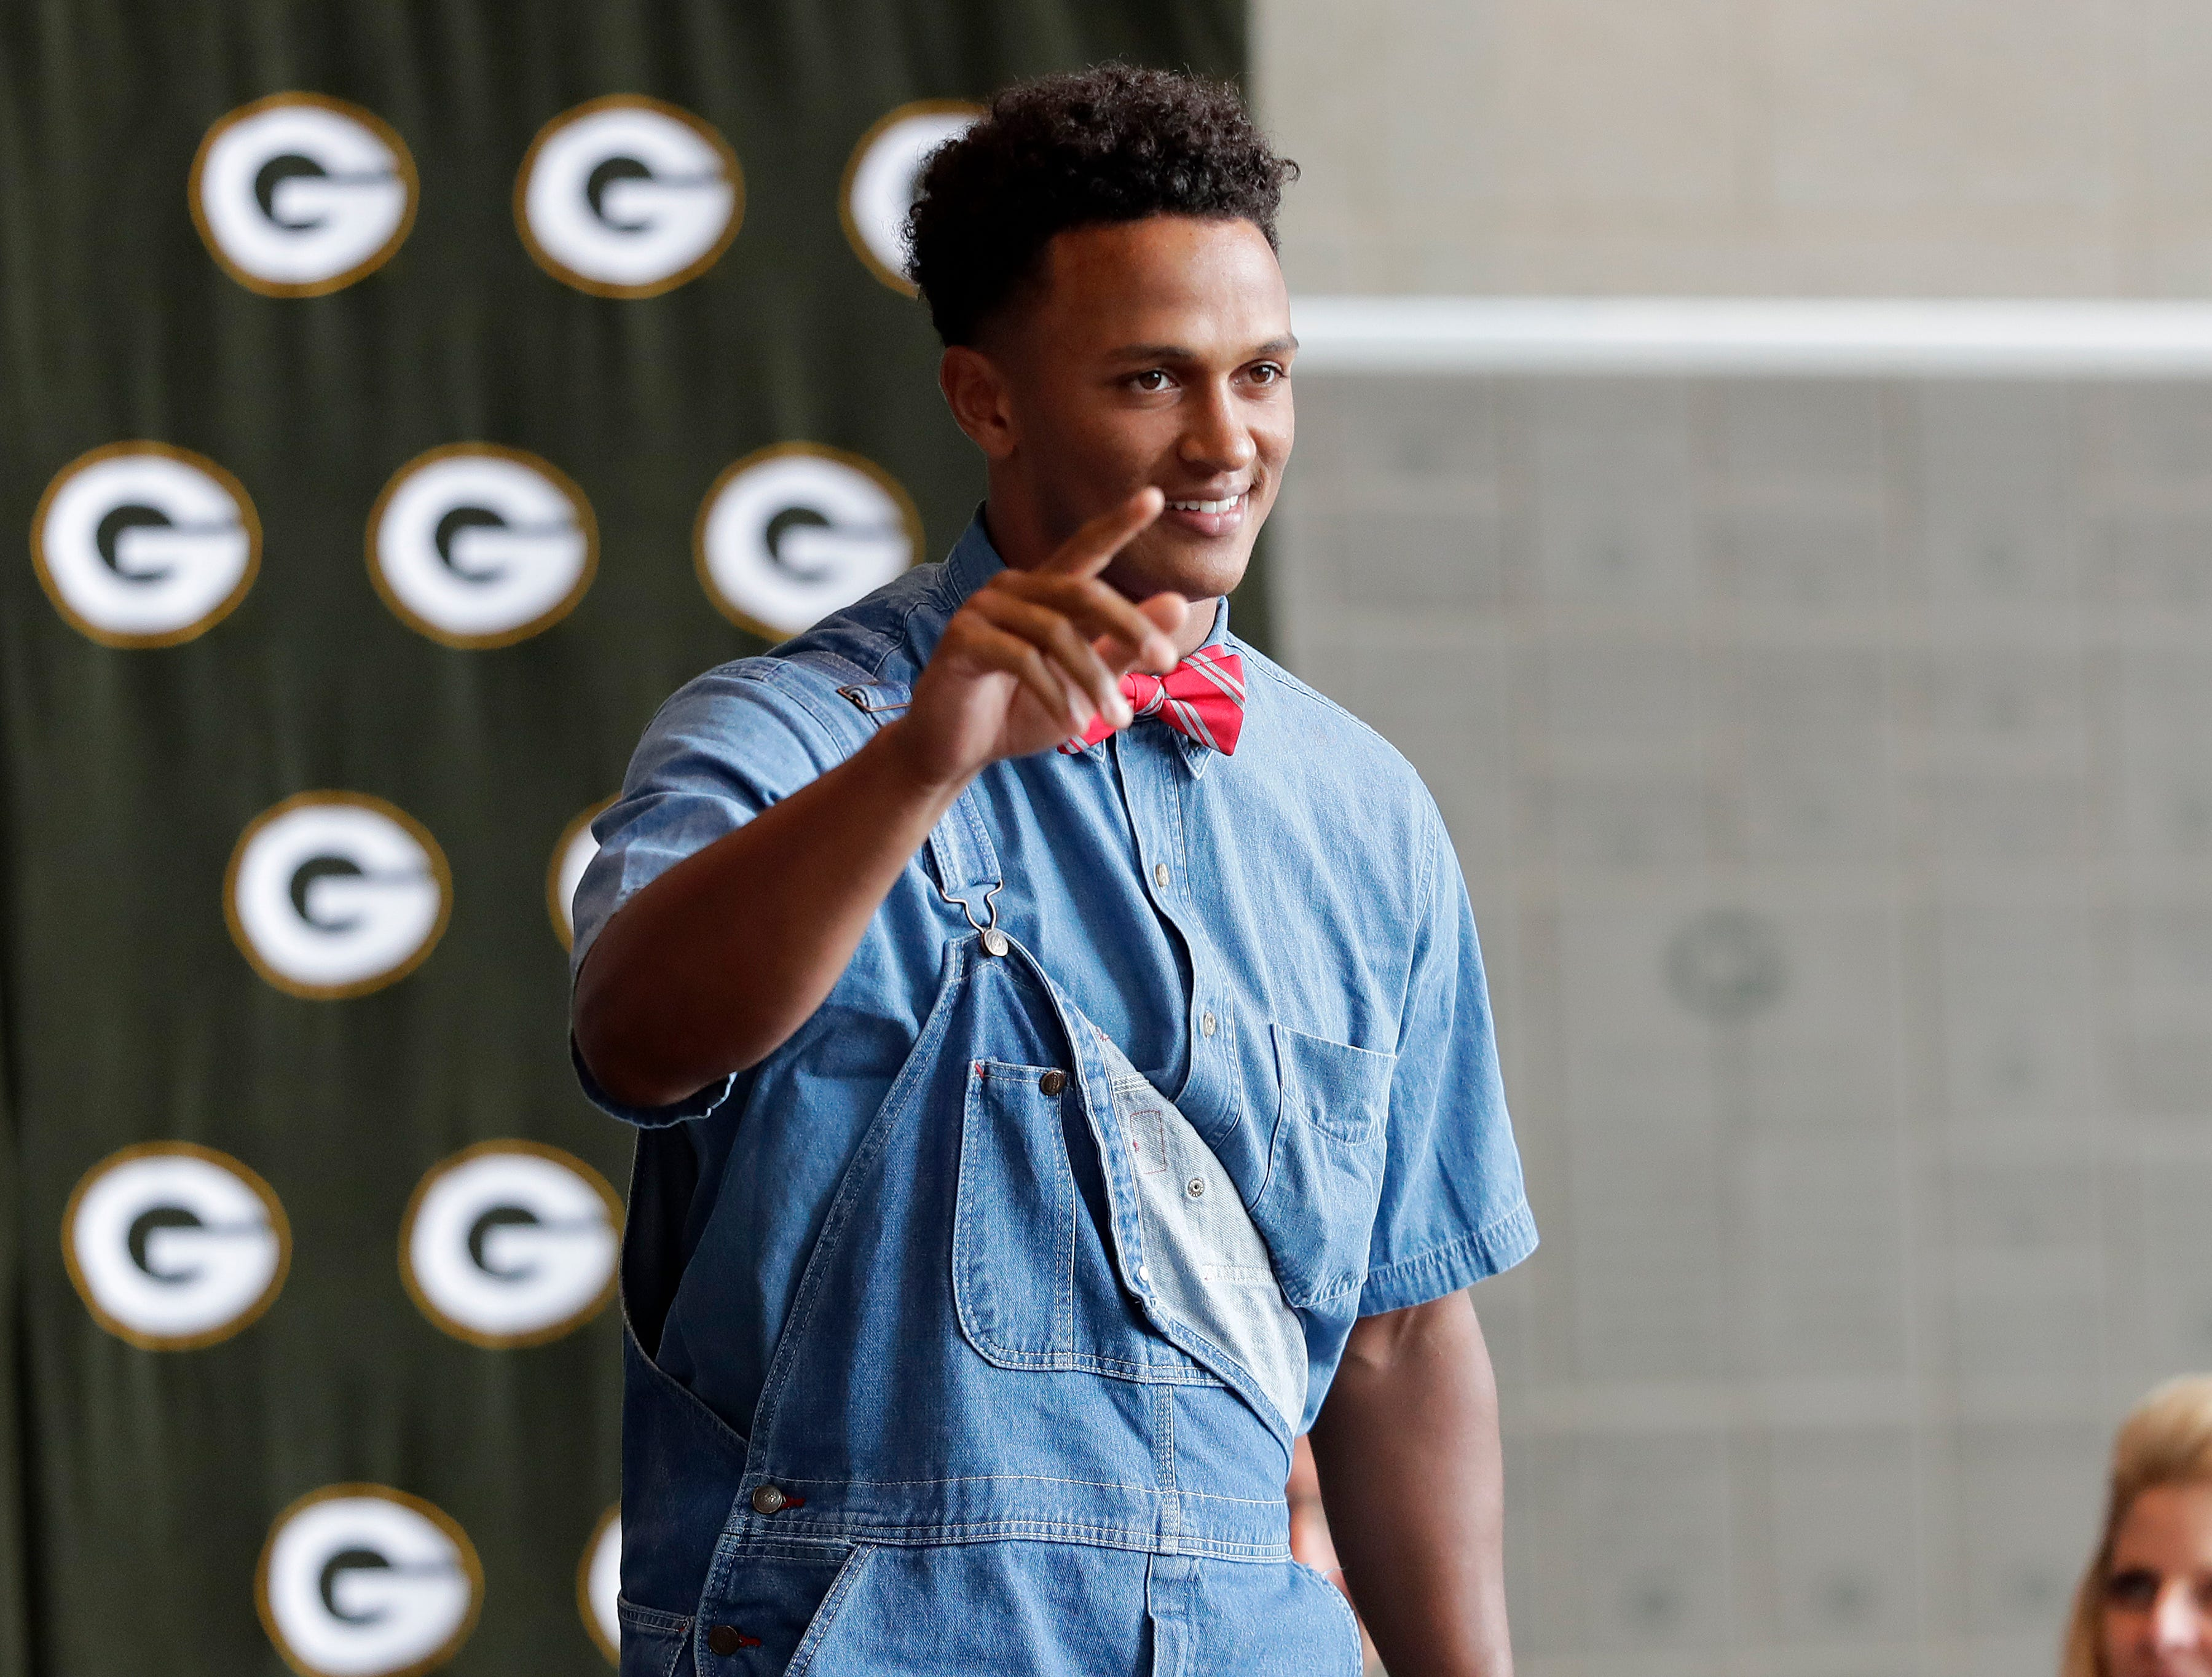 Green Bay Packers quarterback DeShone Kizer (9) shows his denim side during the Green Bay Chamber of Commerce Welcome Back Packers Luncheon at Lambeau Field Wednesday, August 29, 2018 in Green Bay, Wis.